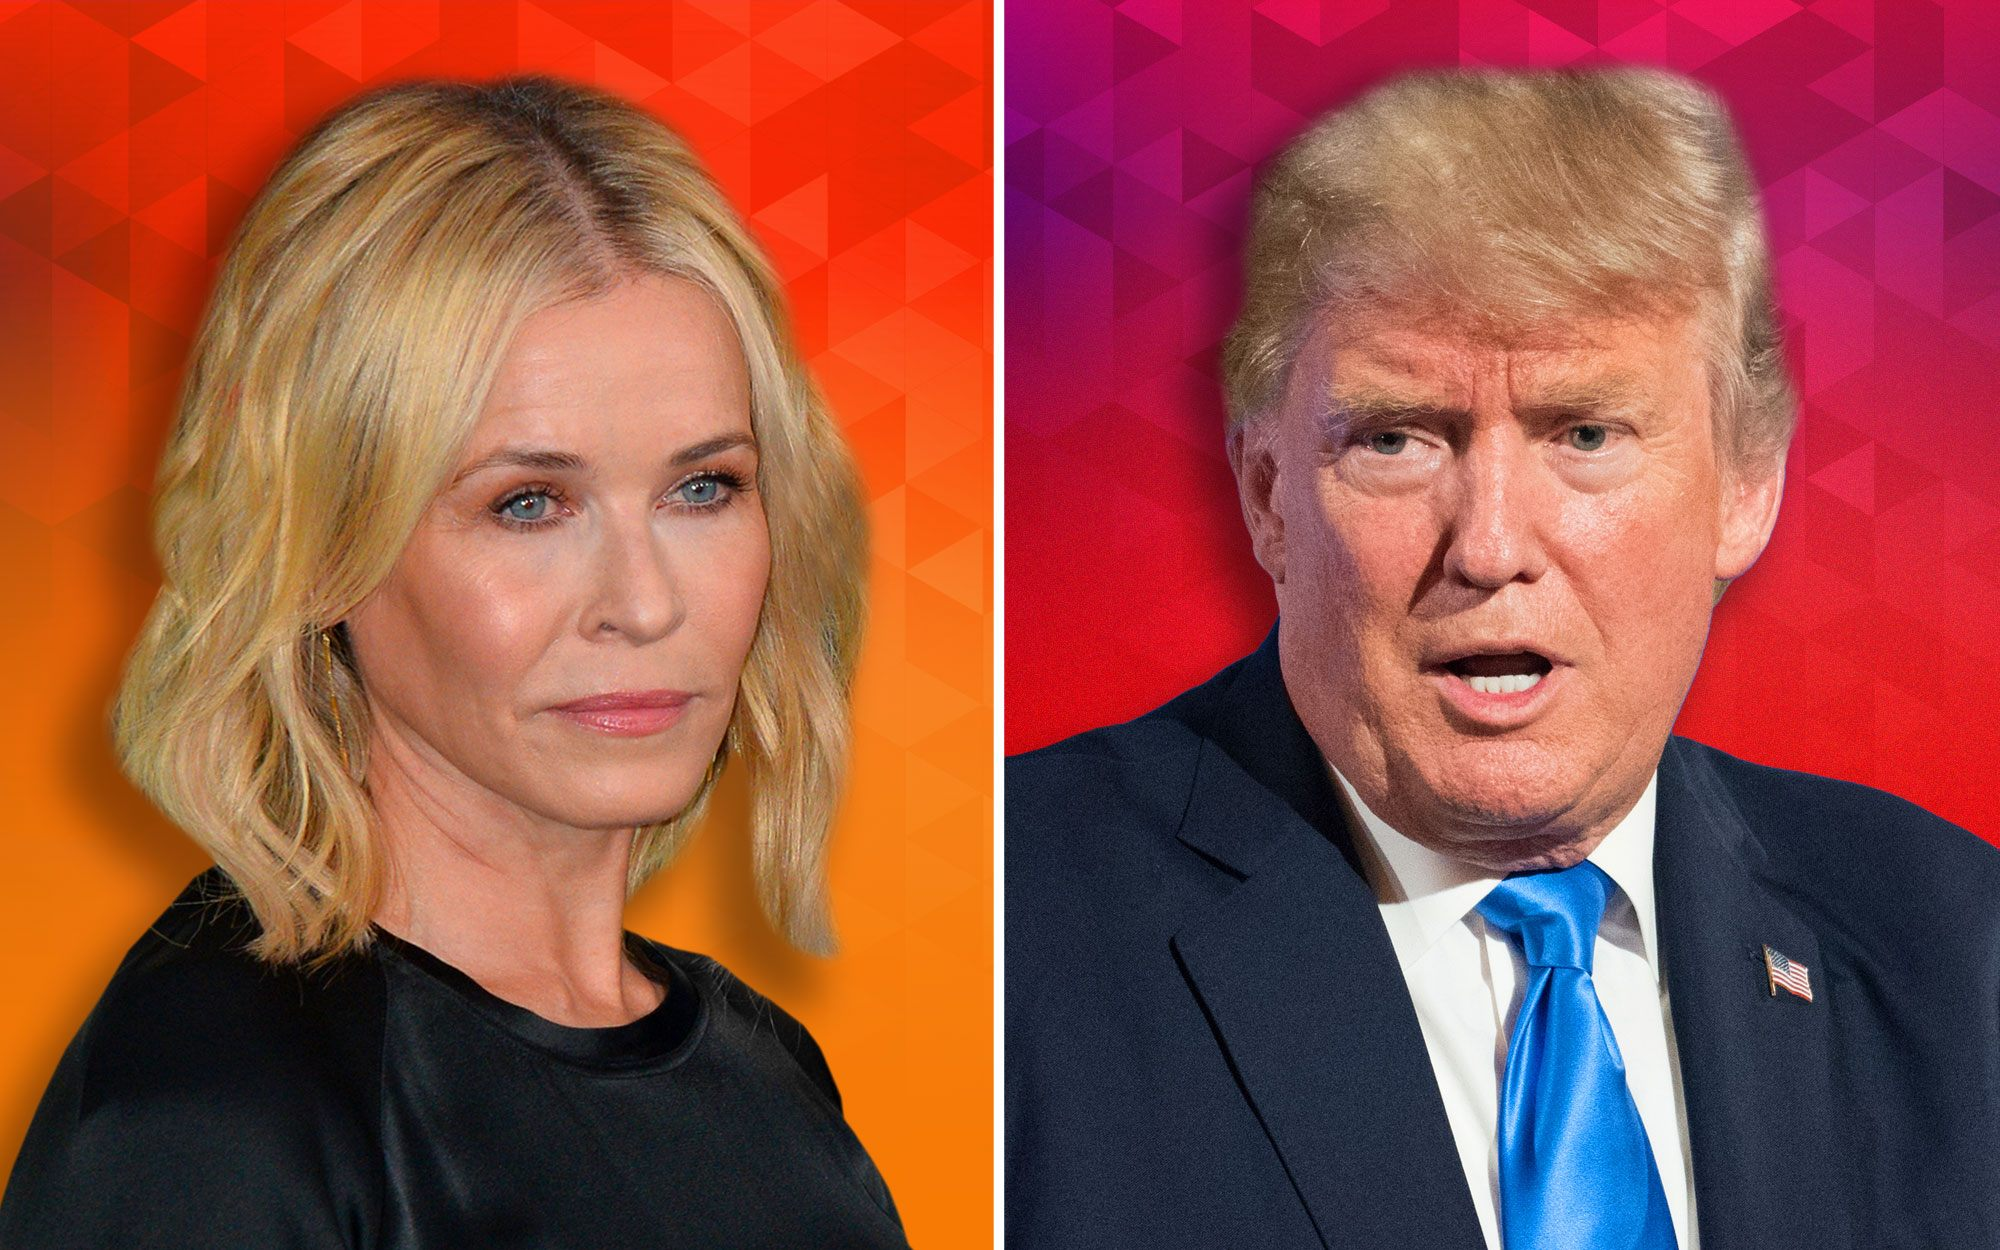 Chelsea Handler Calls Trump a 'Toddler' and Attacks President's Supporters